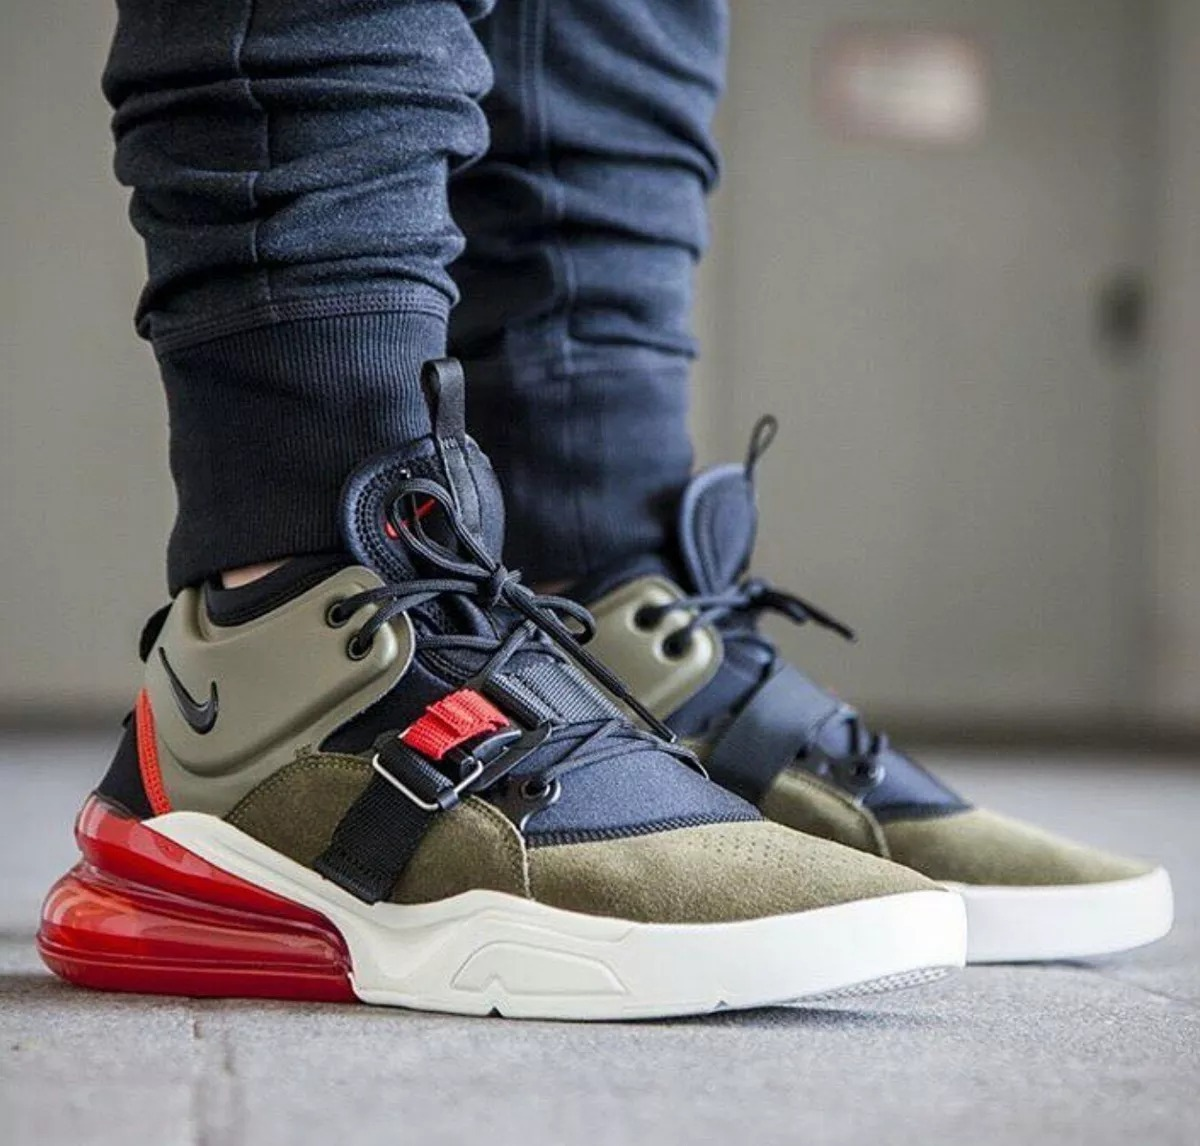 29019d8525df5 ... where to buy zapatillas nike air max force 270 medium olive. cargando  zoom. 73994